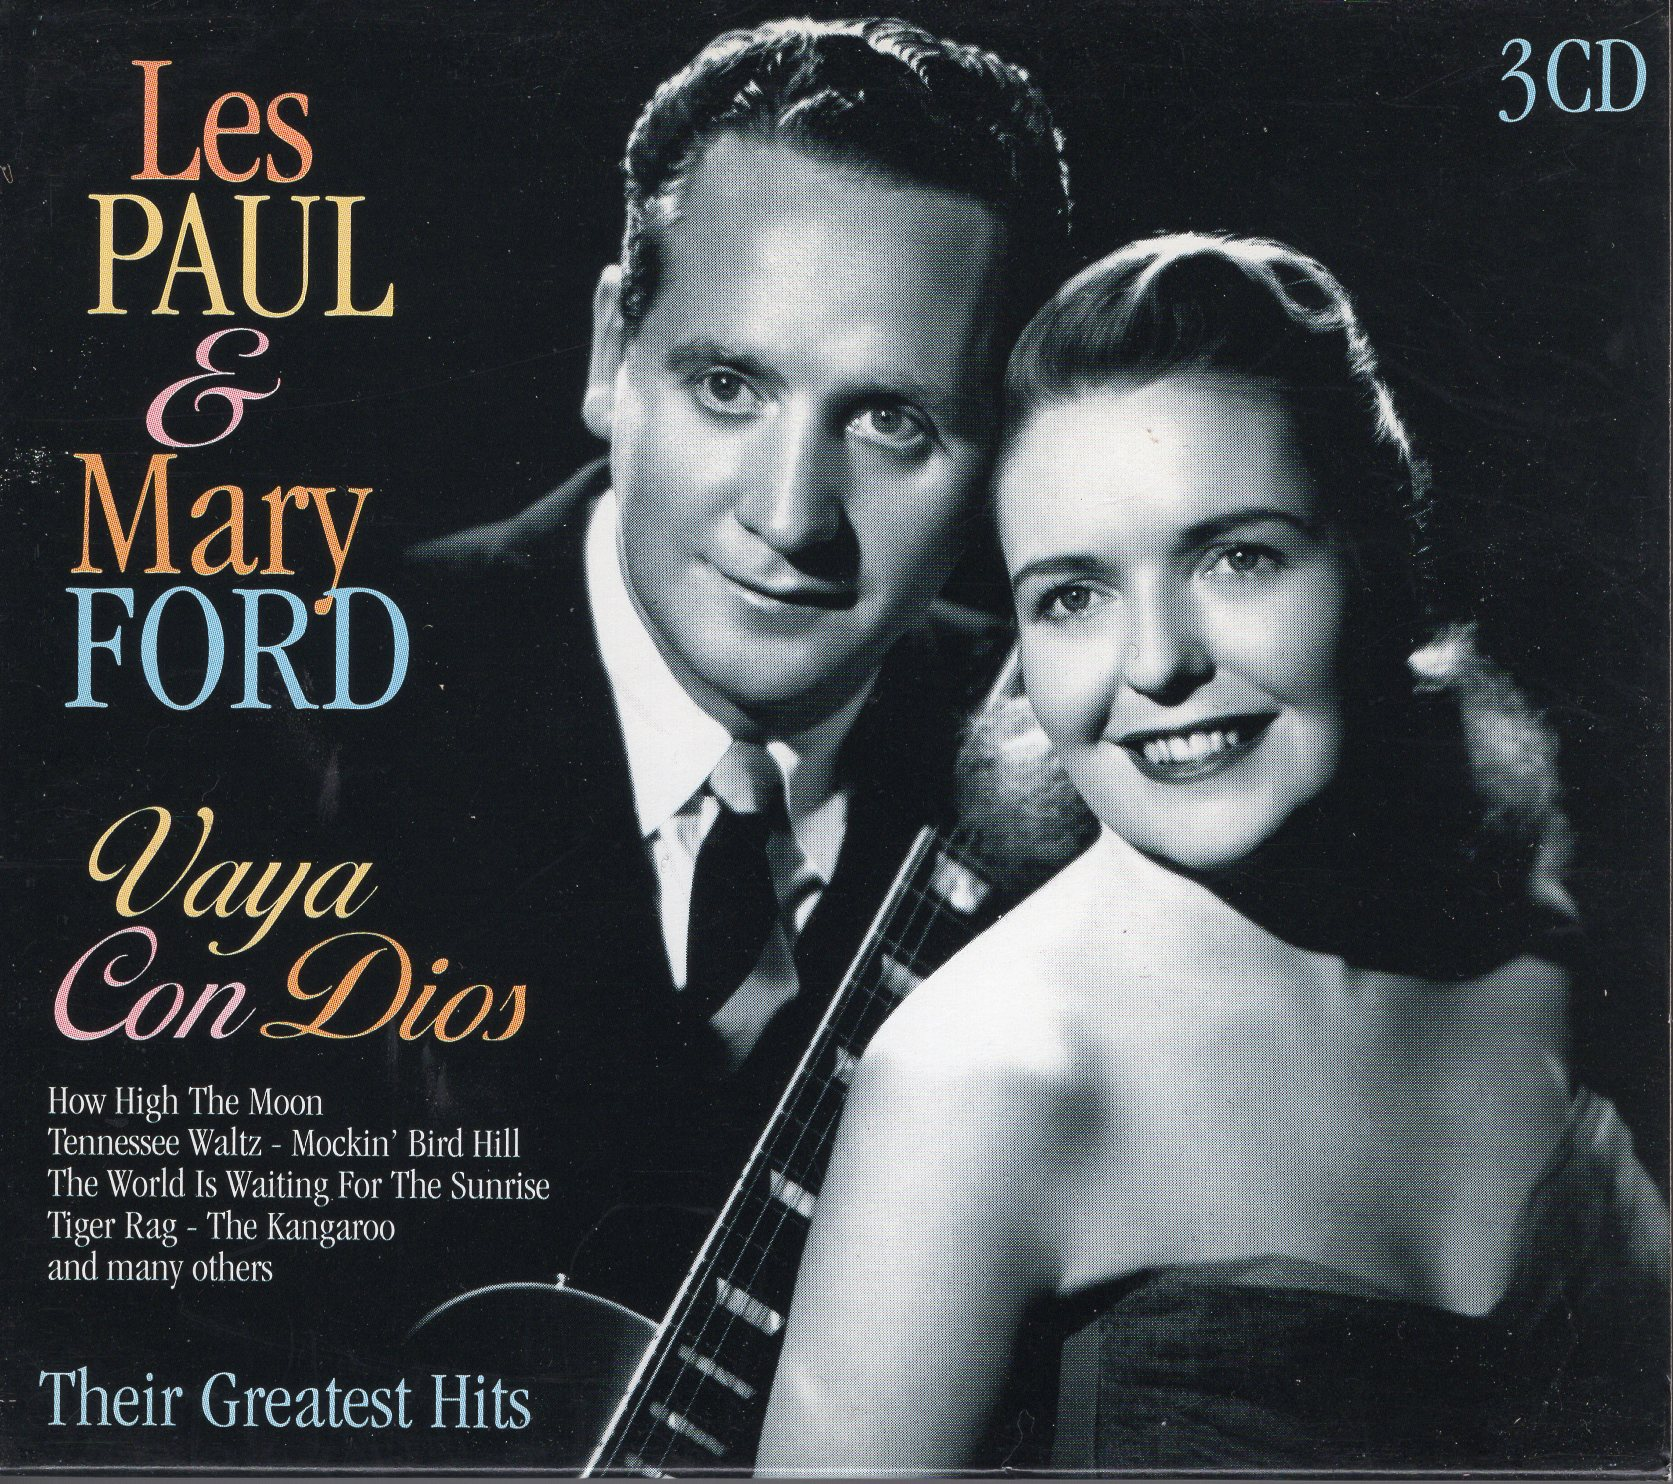 """Vaya Con Dios"" Les Paul & Mary Ford"